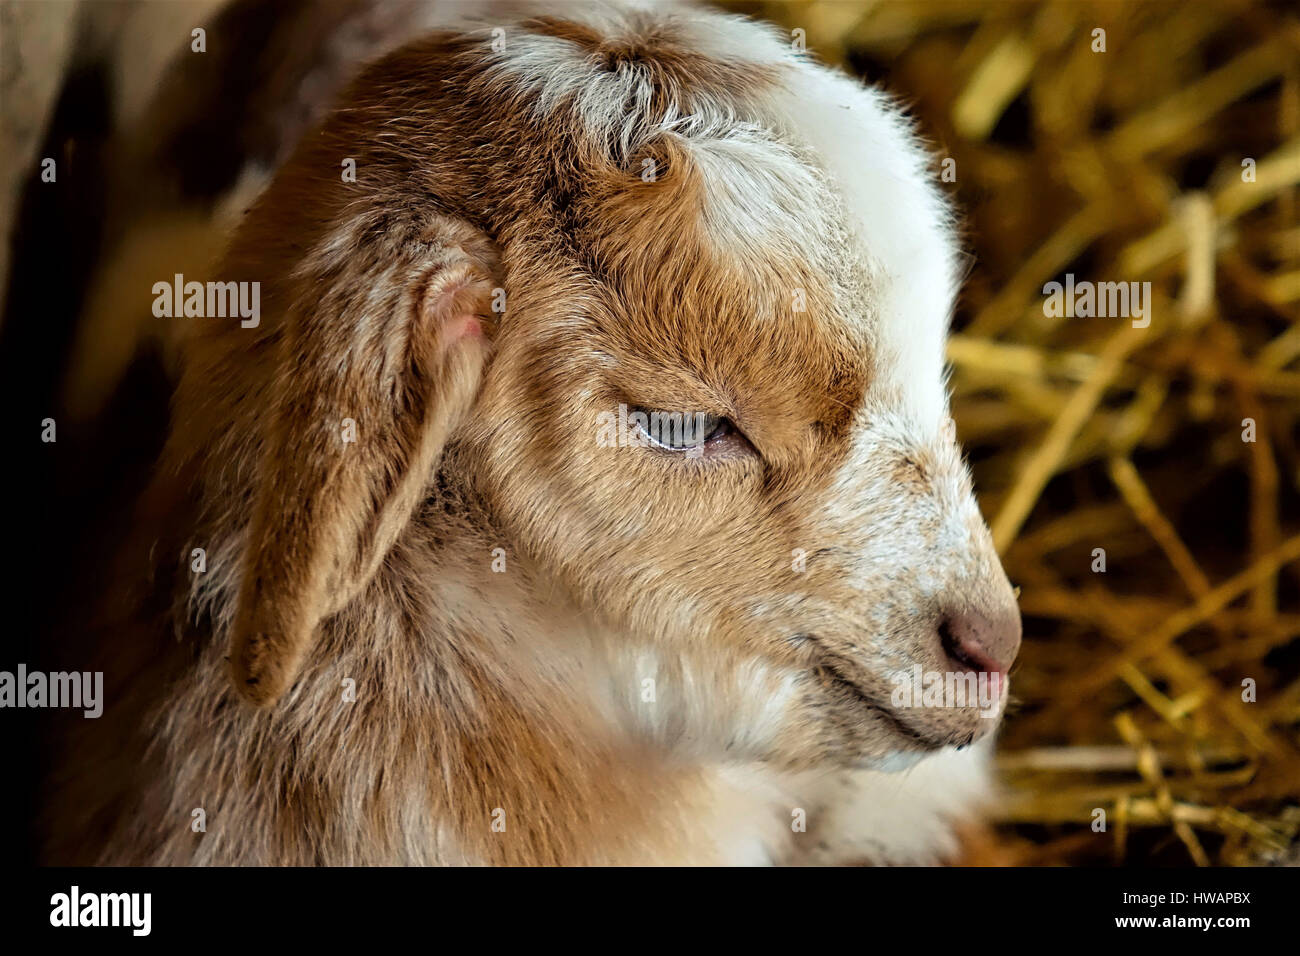 Small goat suckling - Stock Image